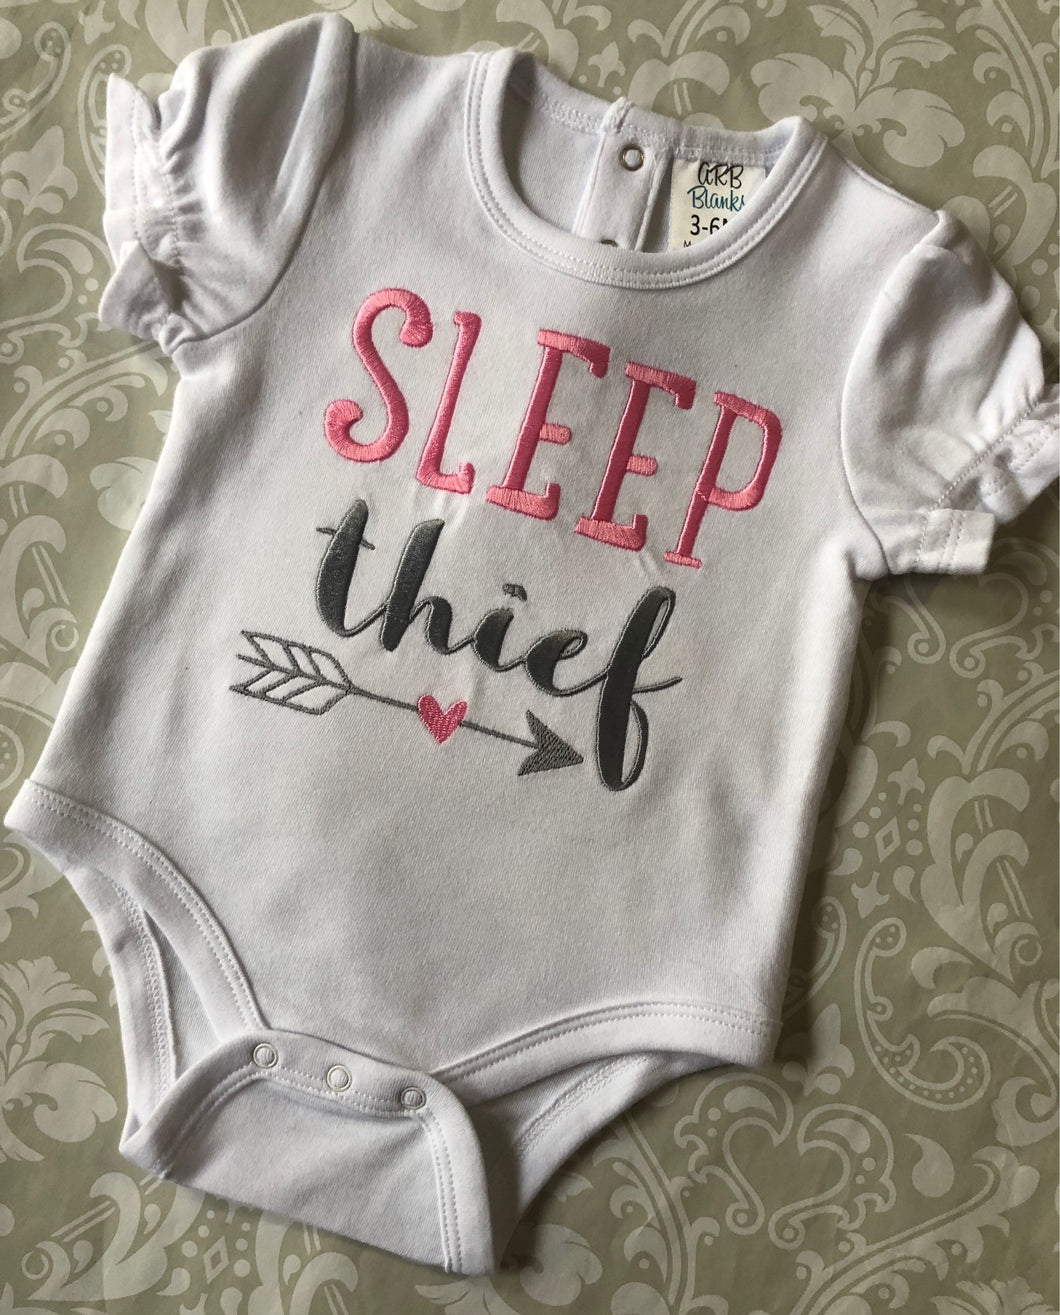 Sleep thief embroidered baby bodysuit